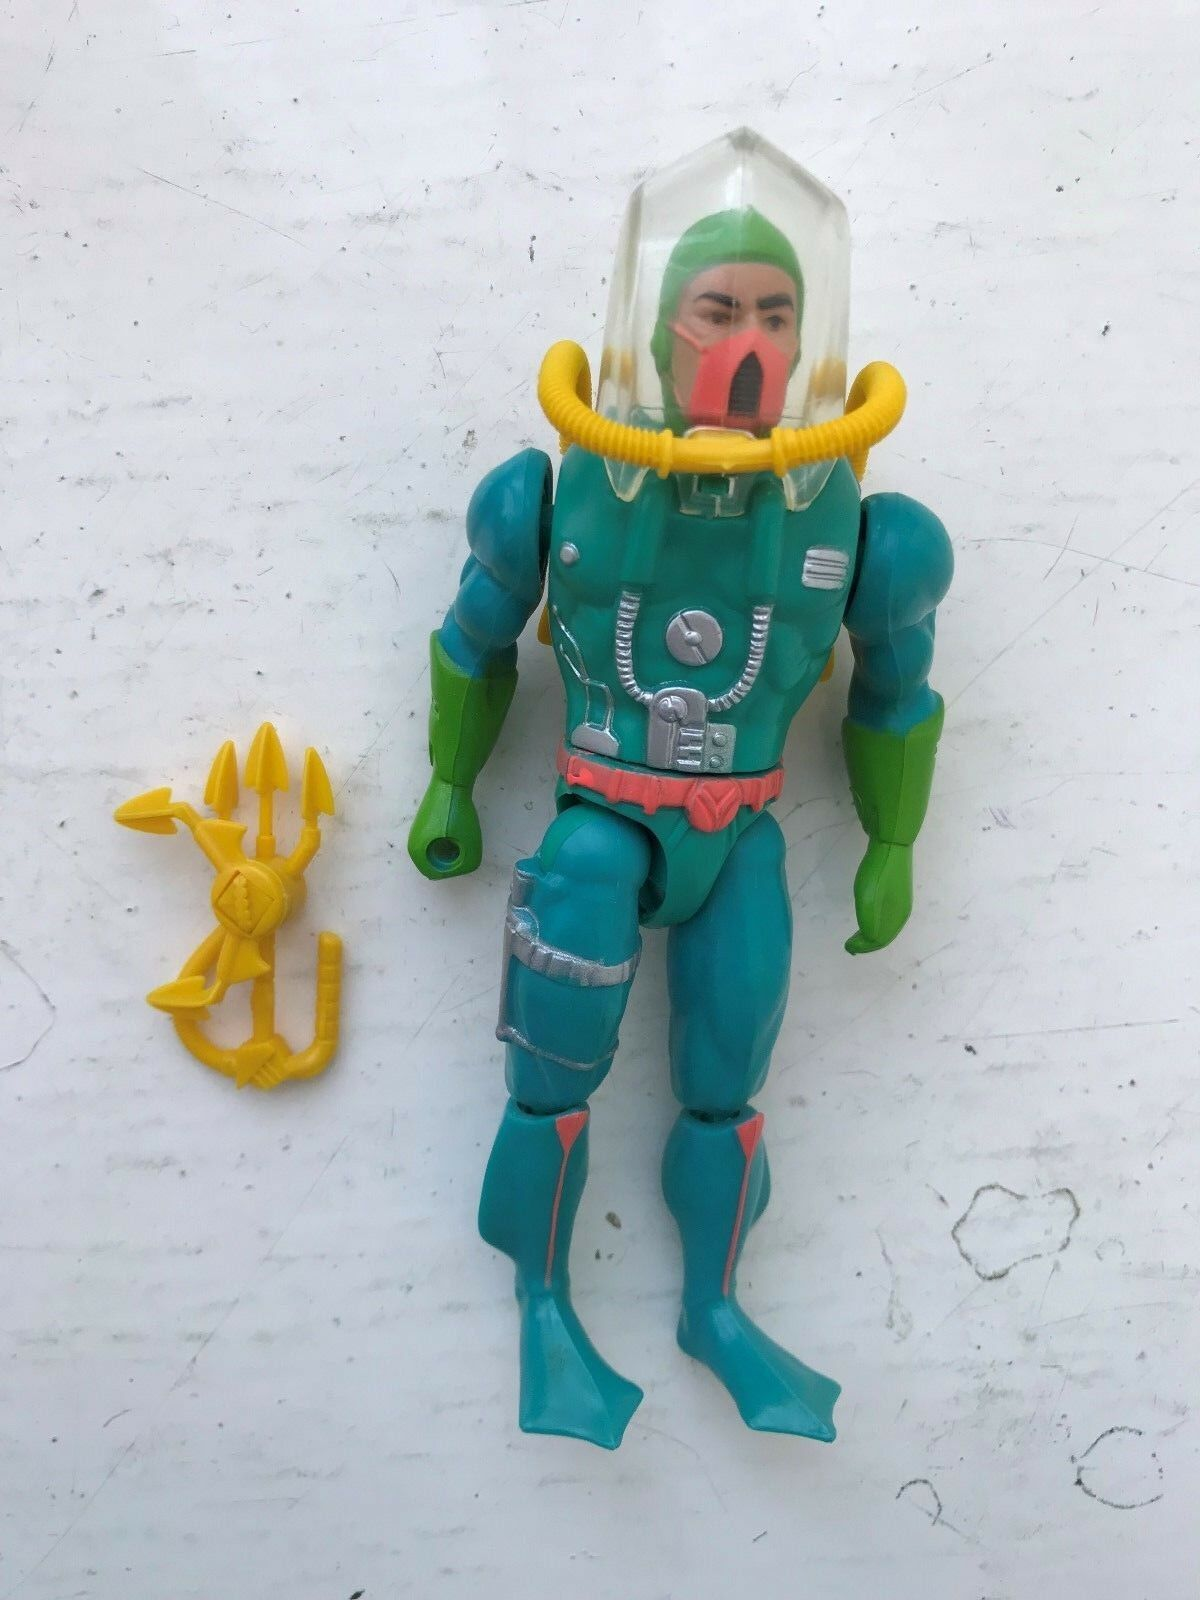 RARE 80S COMPLETE MATTEL HE-MAN MOTU THE NEW ADVENTURES HYDRON ACTION FIGURE